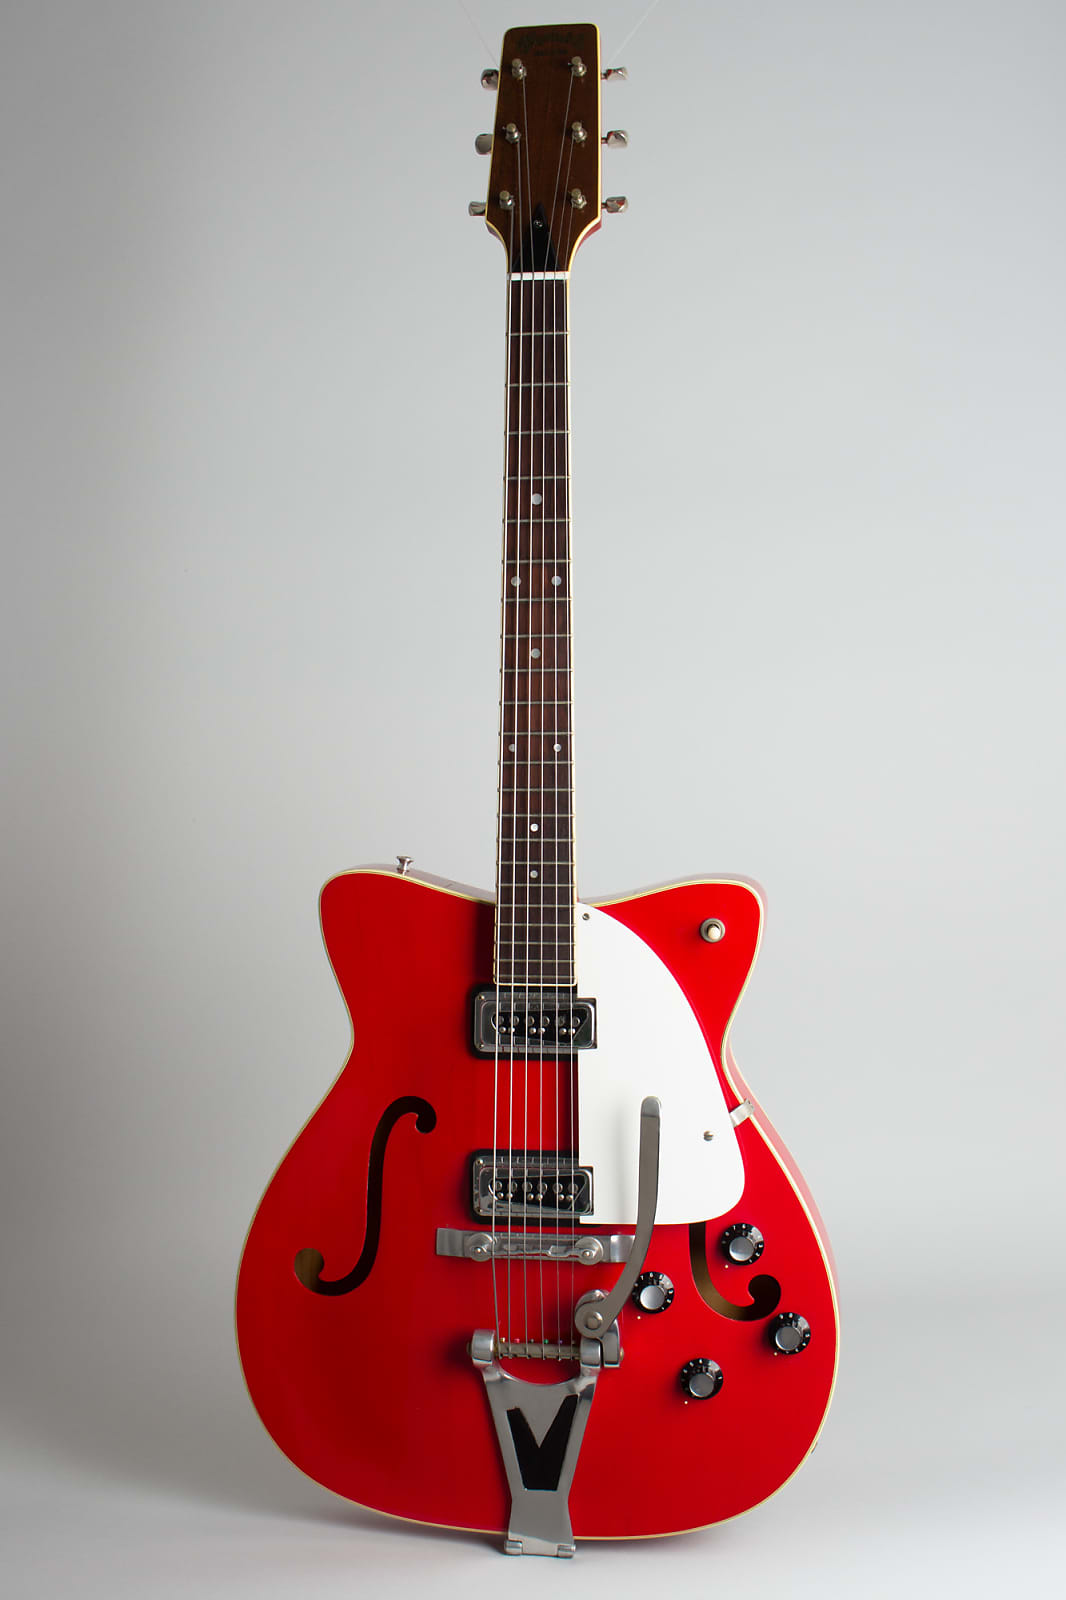 C. F. Martin  GT-75 Thinline Hollow Body Electric Guitar (1967), ser. #218537, original black hard shell case.